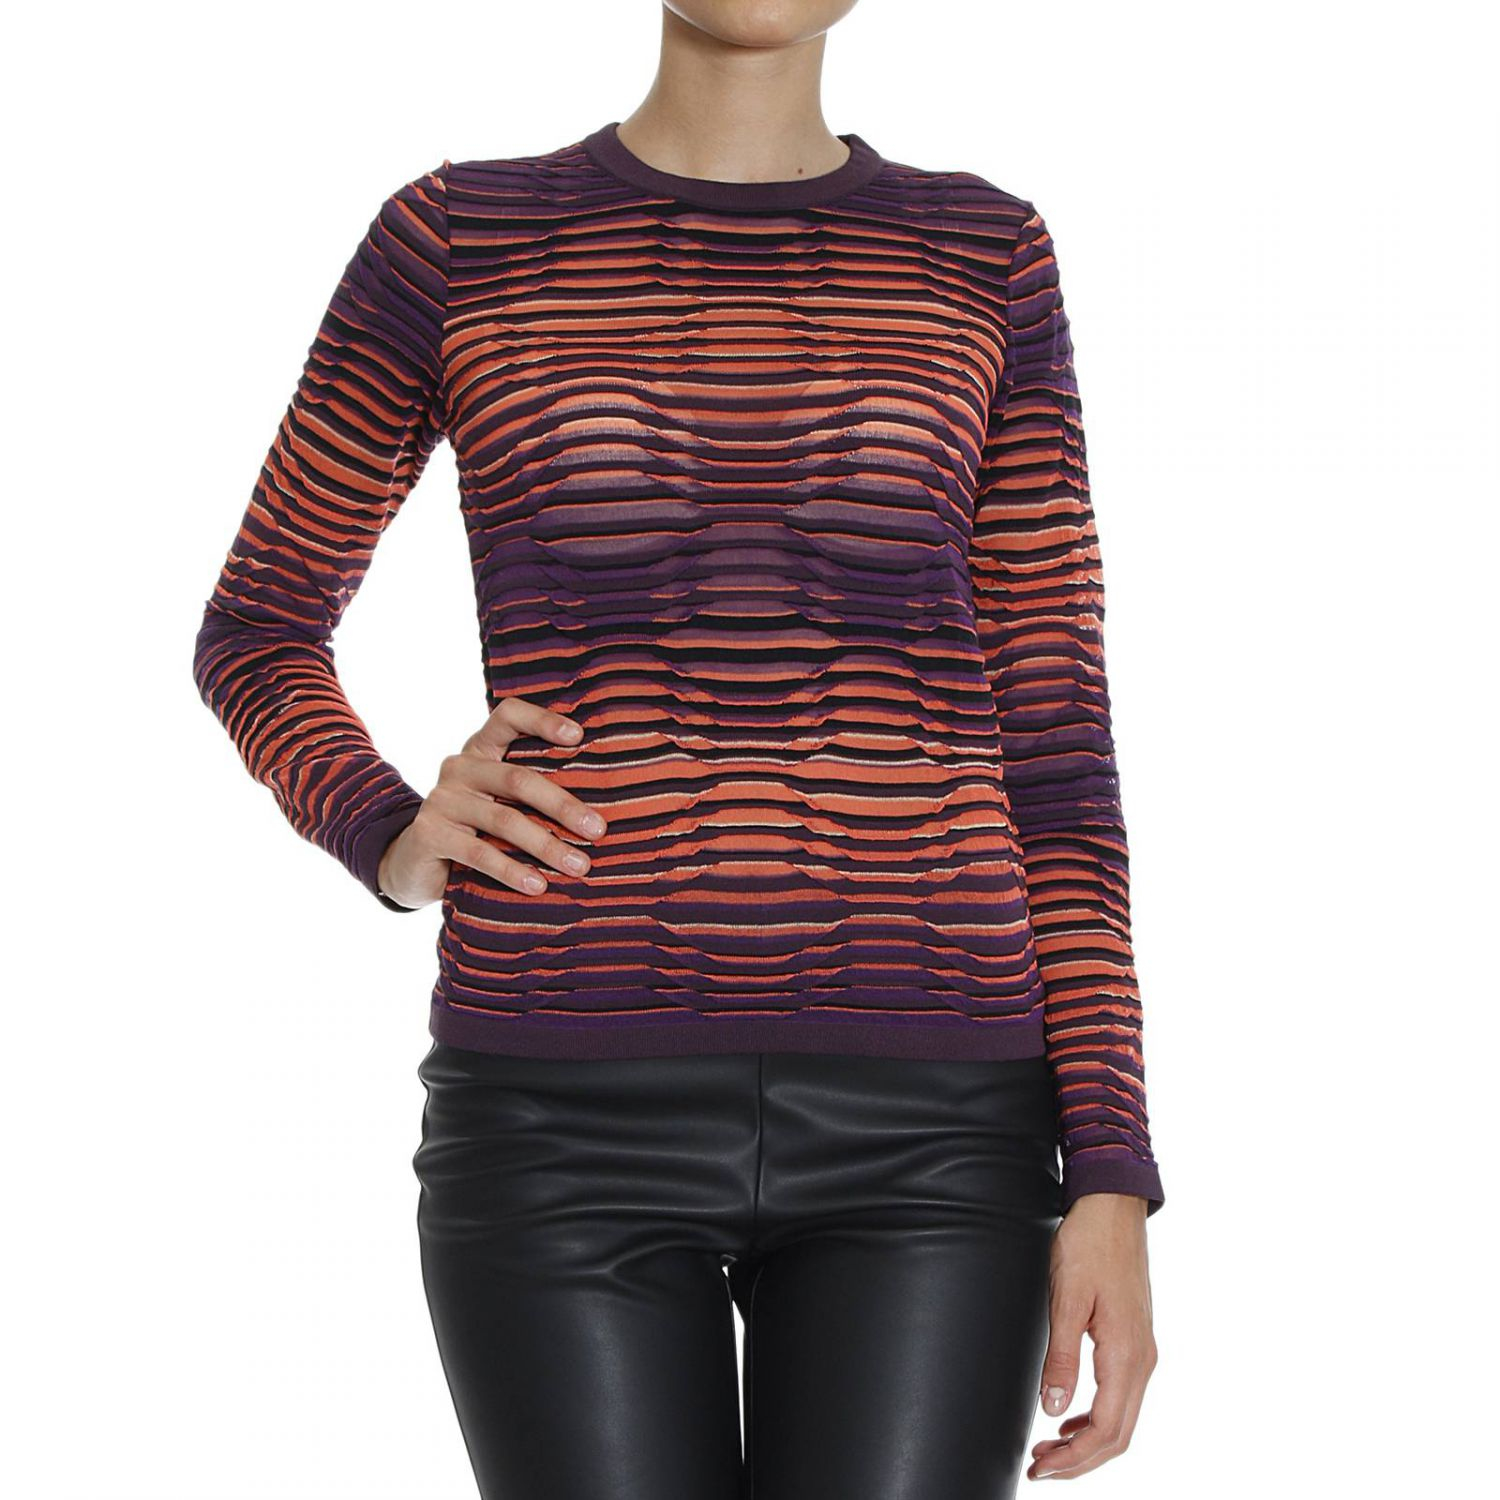 M Missoni Woman Metallic Open-knit Sweater Storm Blue Size S M Missoni Amazing Price For Sale Clearance Cheapest Price Cheap Sale Latest 2018 Cool Clearance Lowest Price fyV0B4tY7